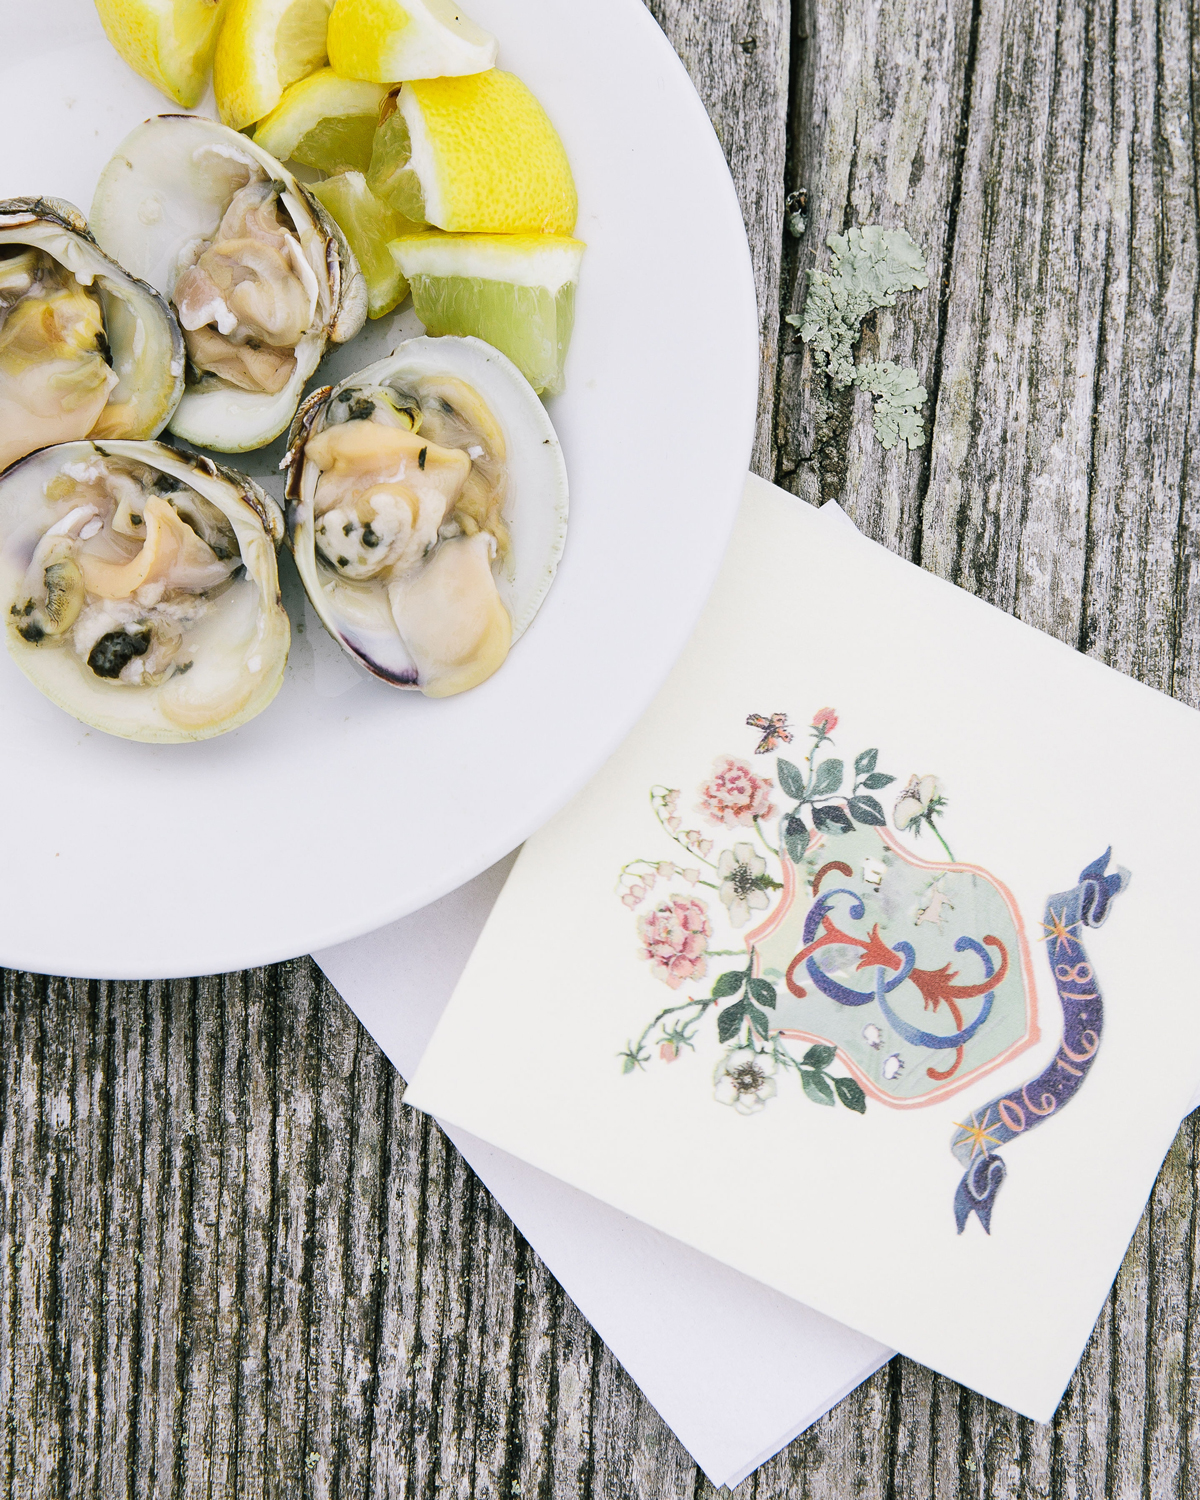 oysters served with custom emblem napkins